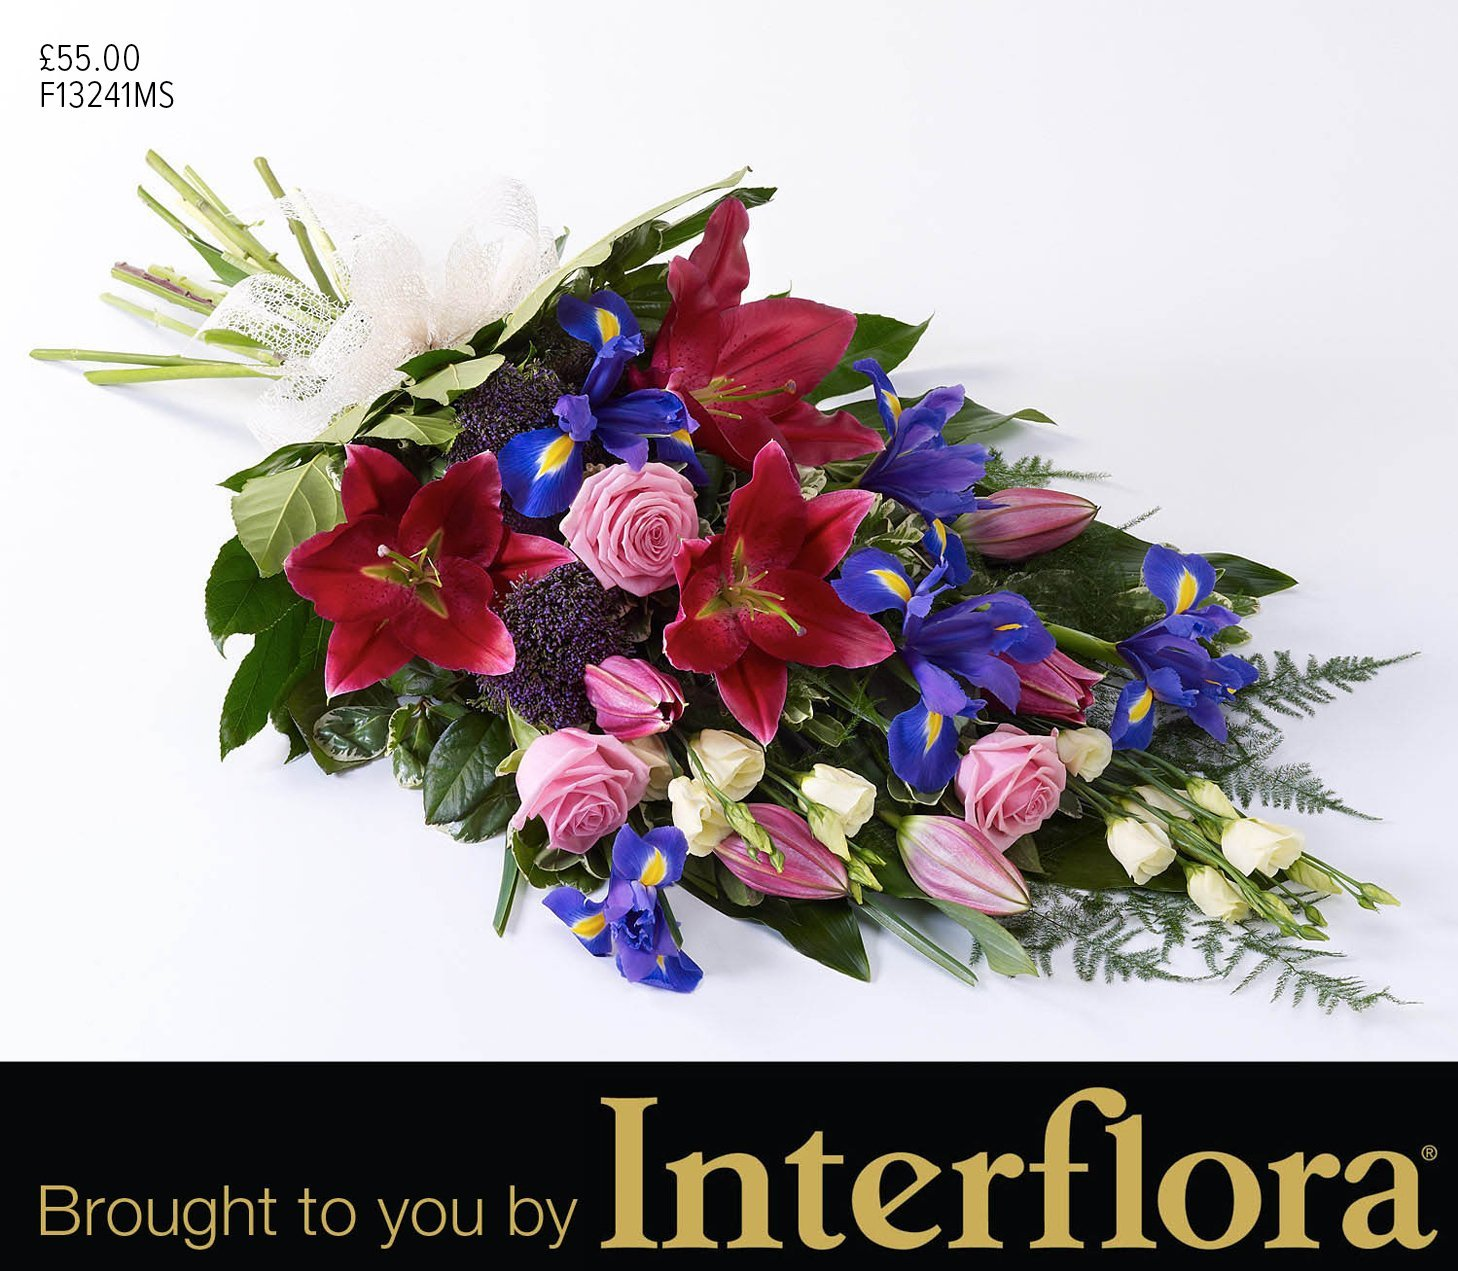 Mortons flower sheaves brought to you by Interflora